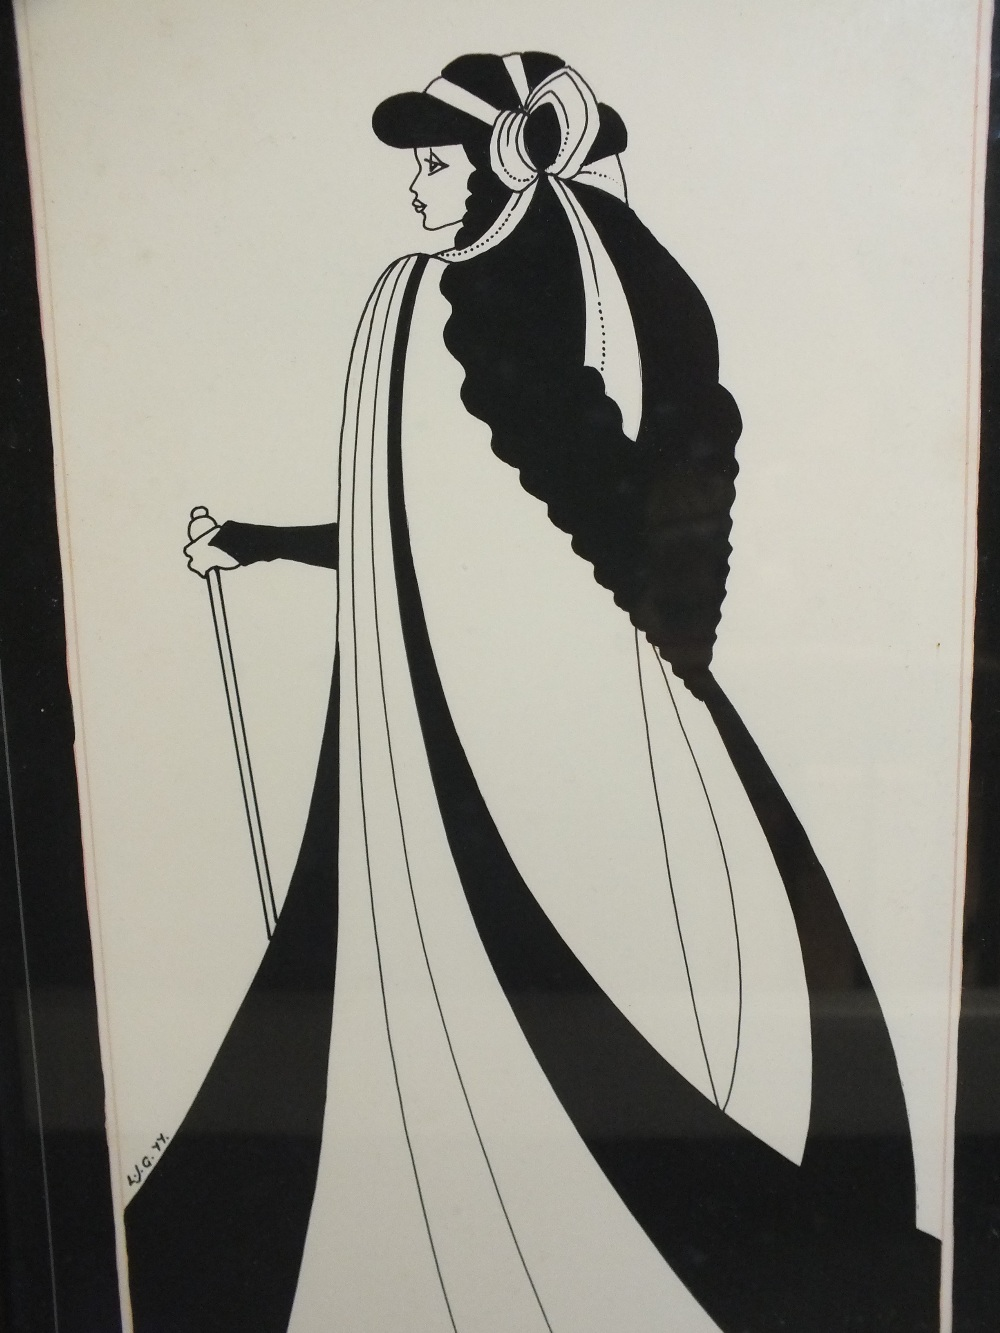 Lot 10 - L.J.G. A pair of Art Deco style portrait studies of stylized women in elegant dress, one signed